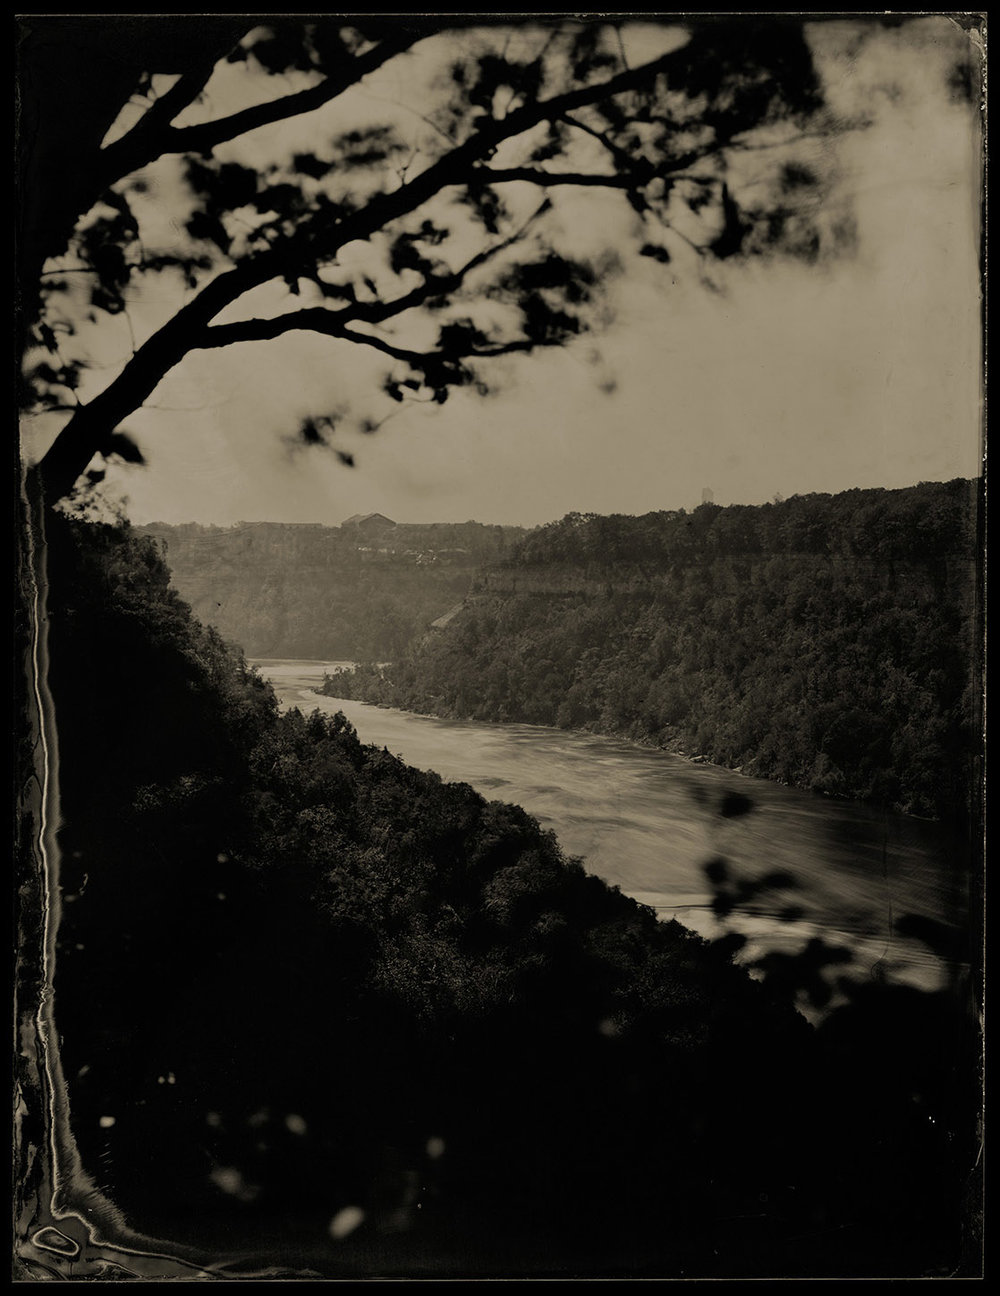 View from atop the Niagara Gorge, 2017 - By: Stephen Brule  www.stephenbrule.com